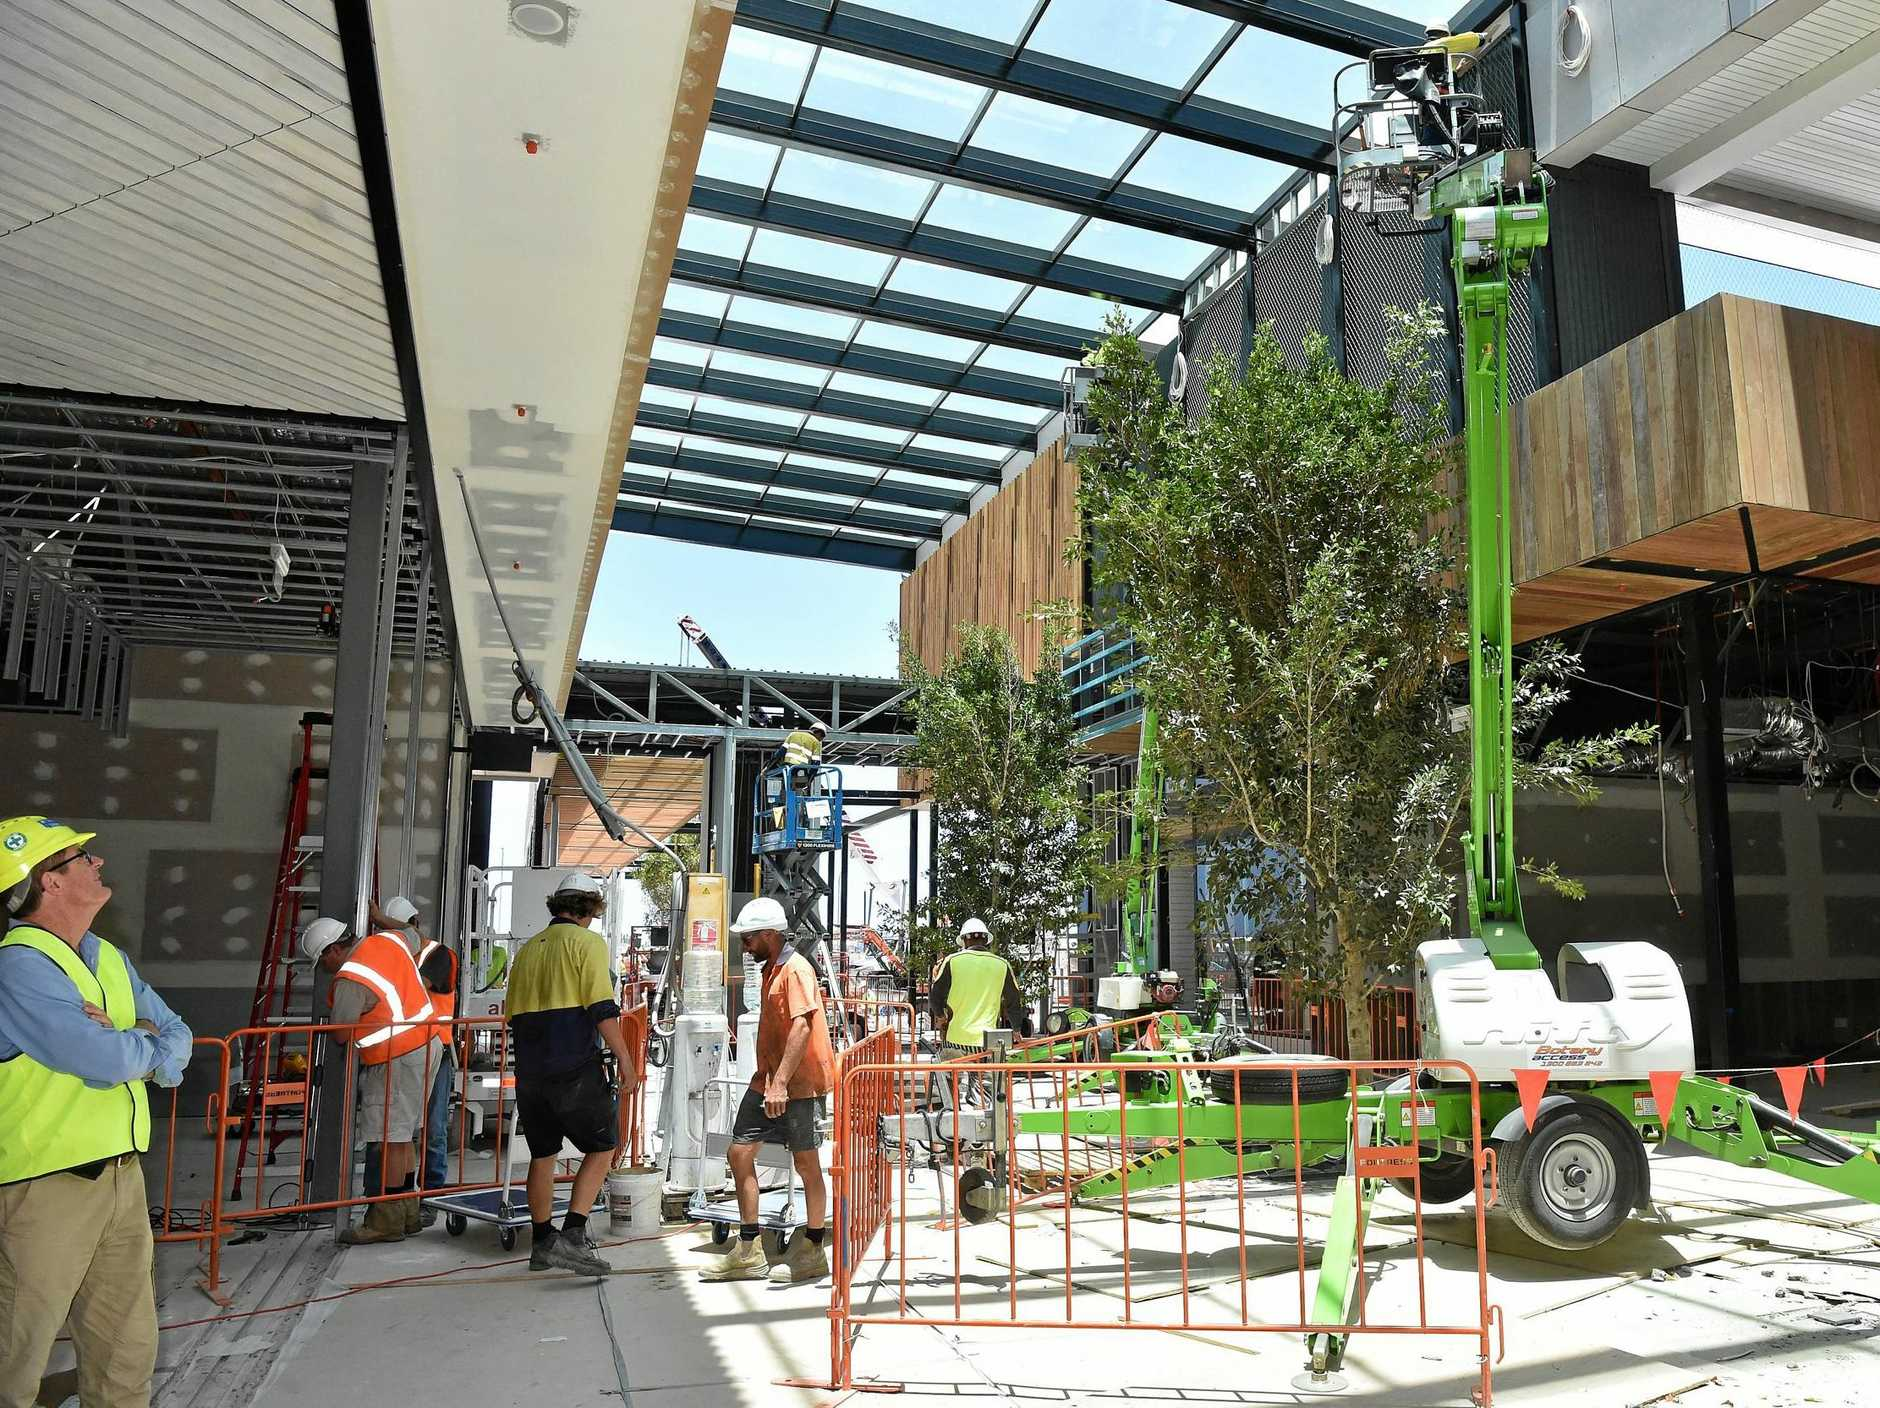 Full steam ahead for the opening of the Stockland Birtinya Shopping Centre. Construction workers put the final pieces together for the grand opening in a couple of weeks.